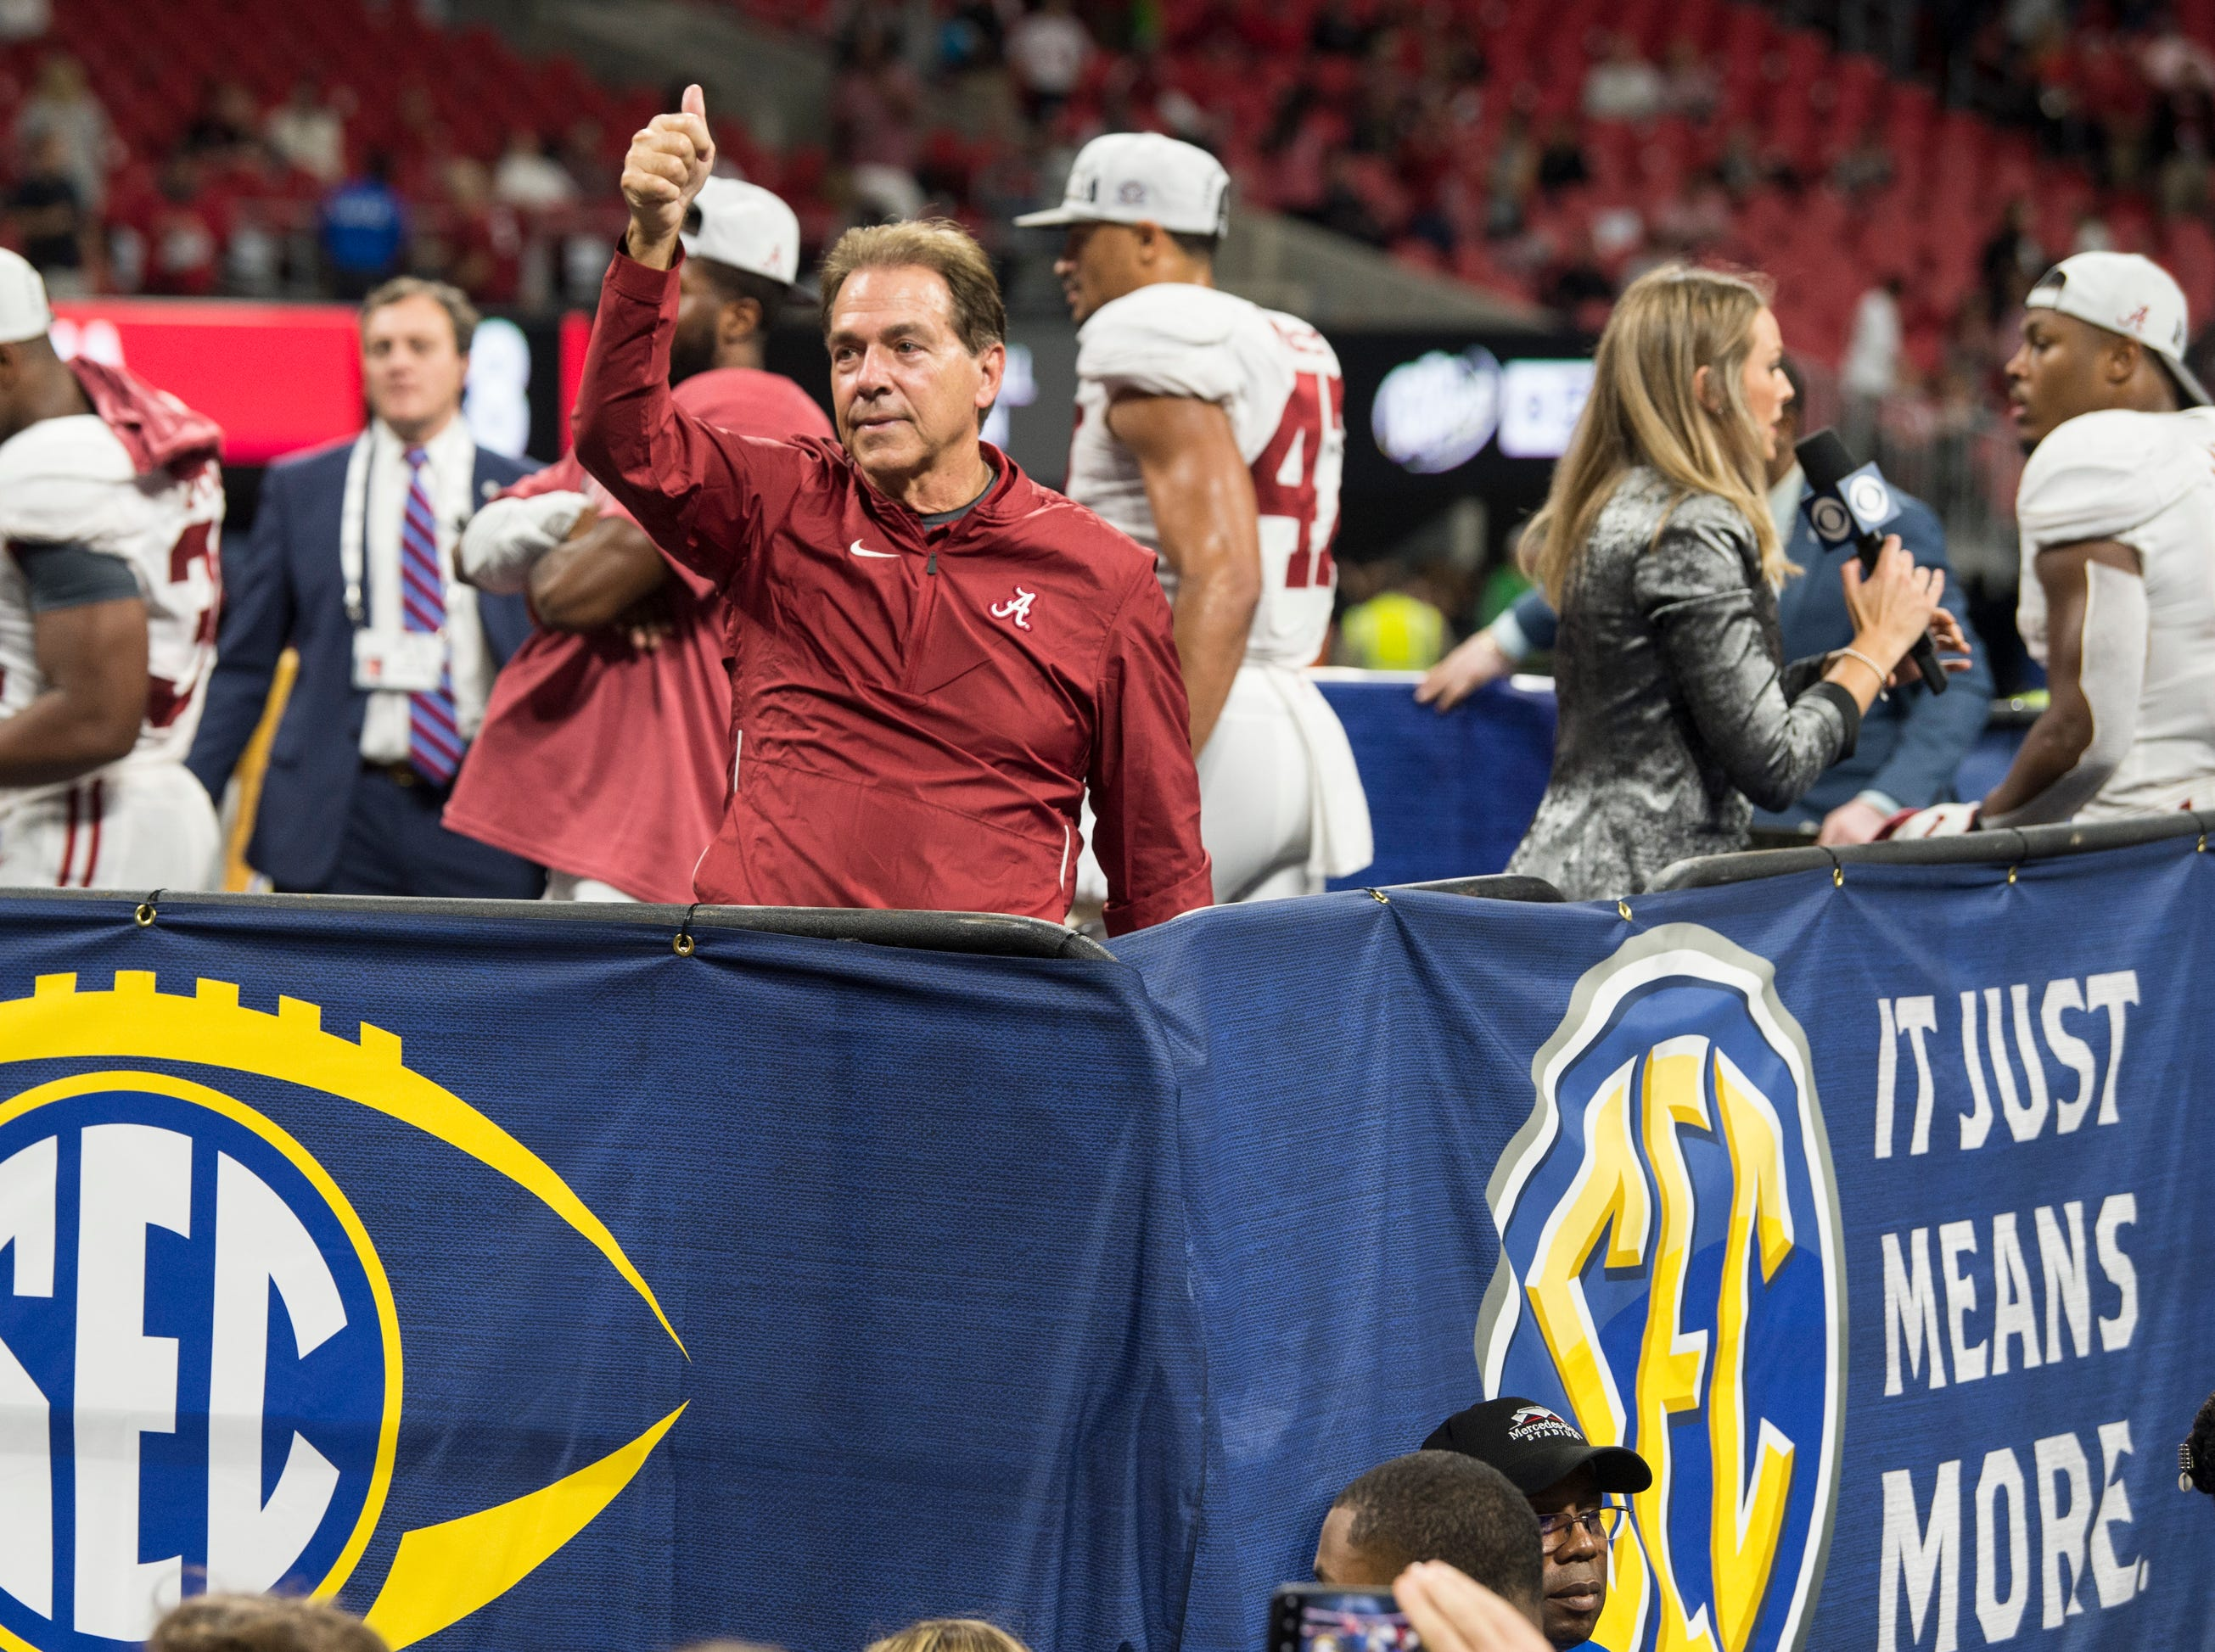 Alabama head coach Nick Saban acknowledges the crowd after winning the SEC Championship game at Mercedes-Benz Stadium in Atlanta, Ga., on Saturday Dec. 1, 2018. Alabama defeated Georgia 35-28.